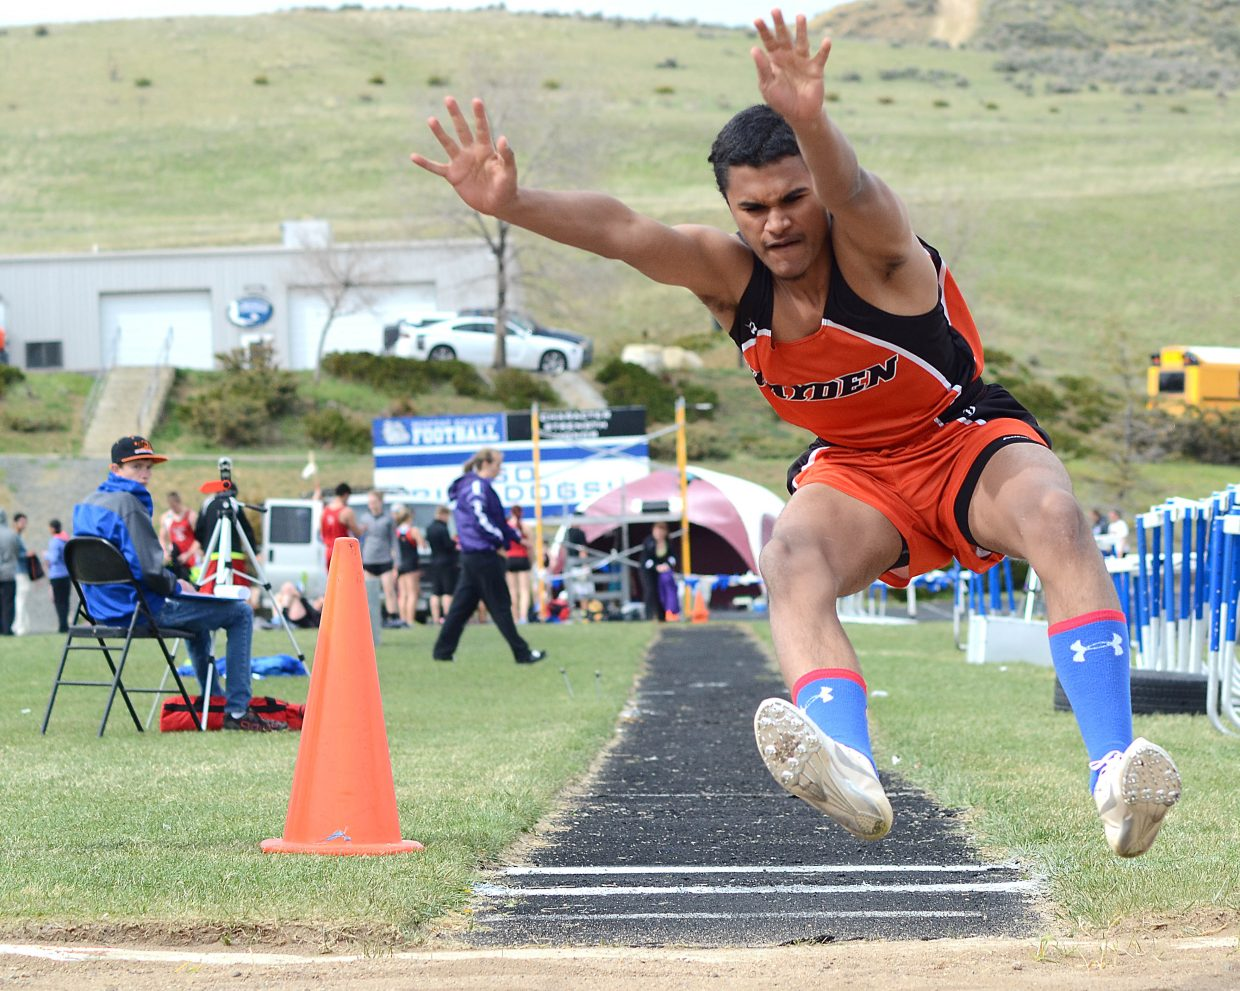 Hayden's Jack Redmond leaps to first place in the boys long jump on Friday at the Clint Wells Invitational at Moffat County High School in Craig. Redmond also placed second in the triple jump, adding to a strong showing by local athletes.